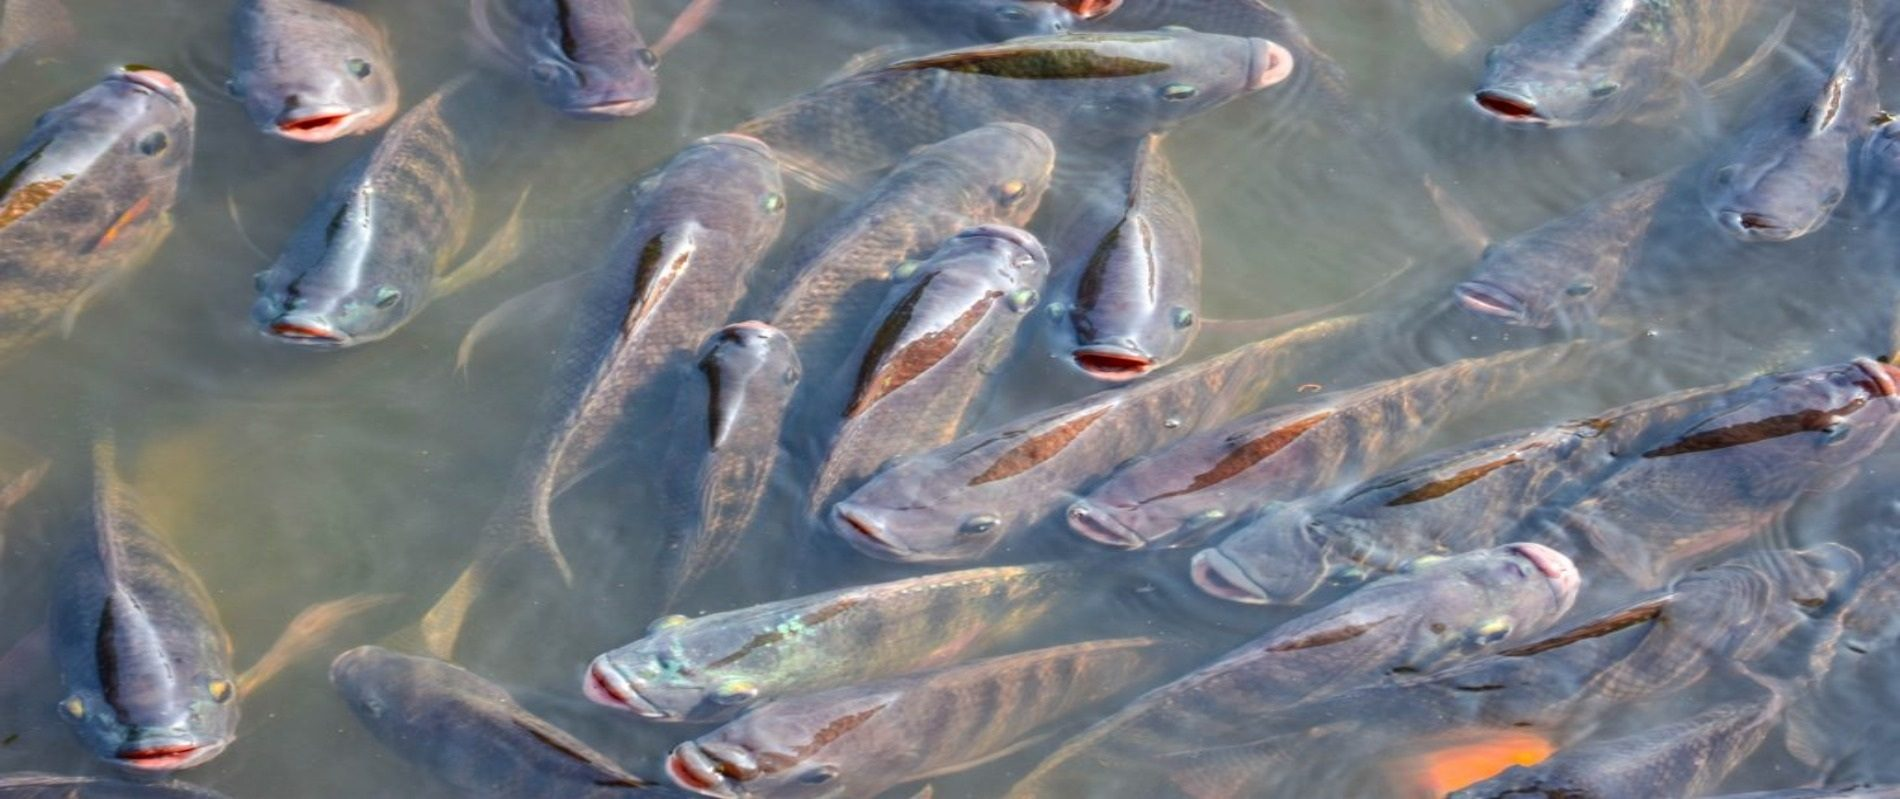 Take fish farming seriously, warns President